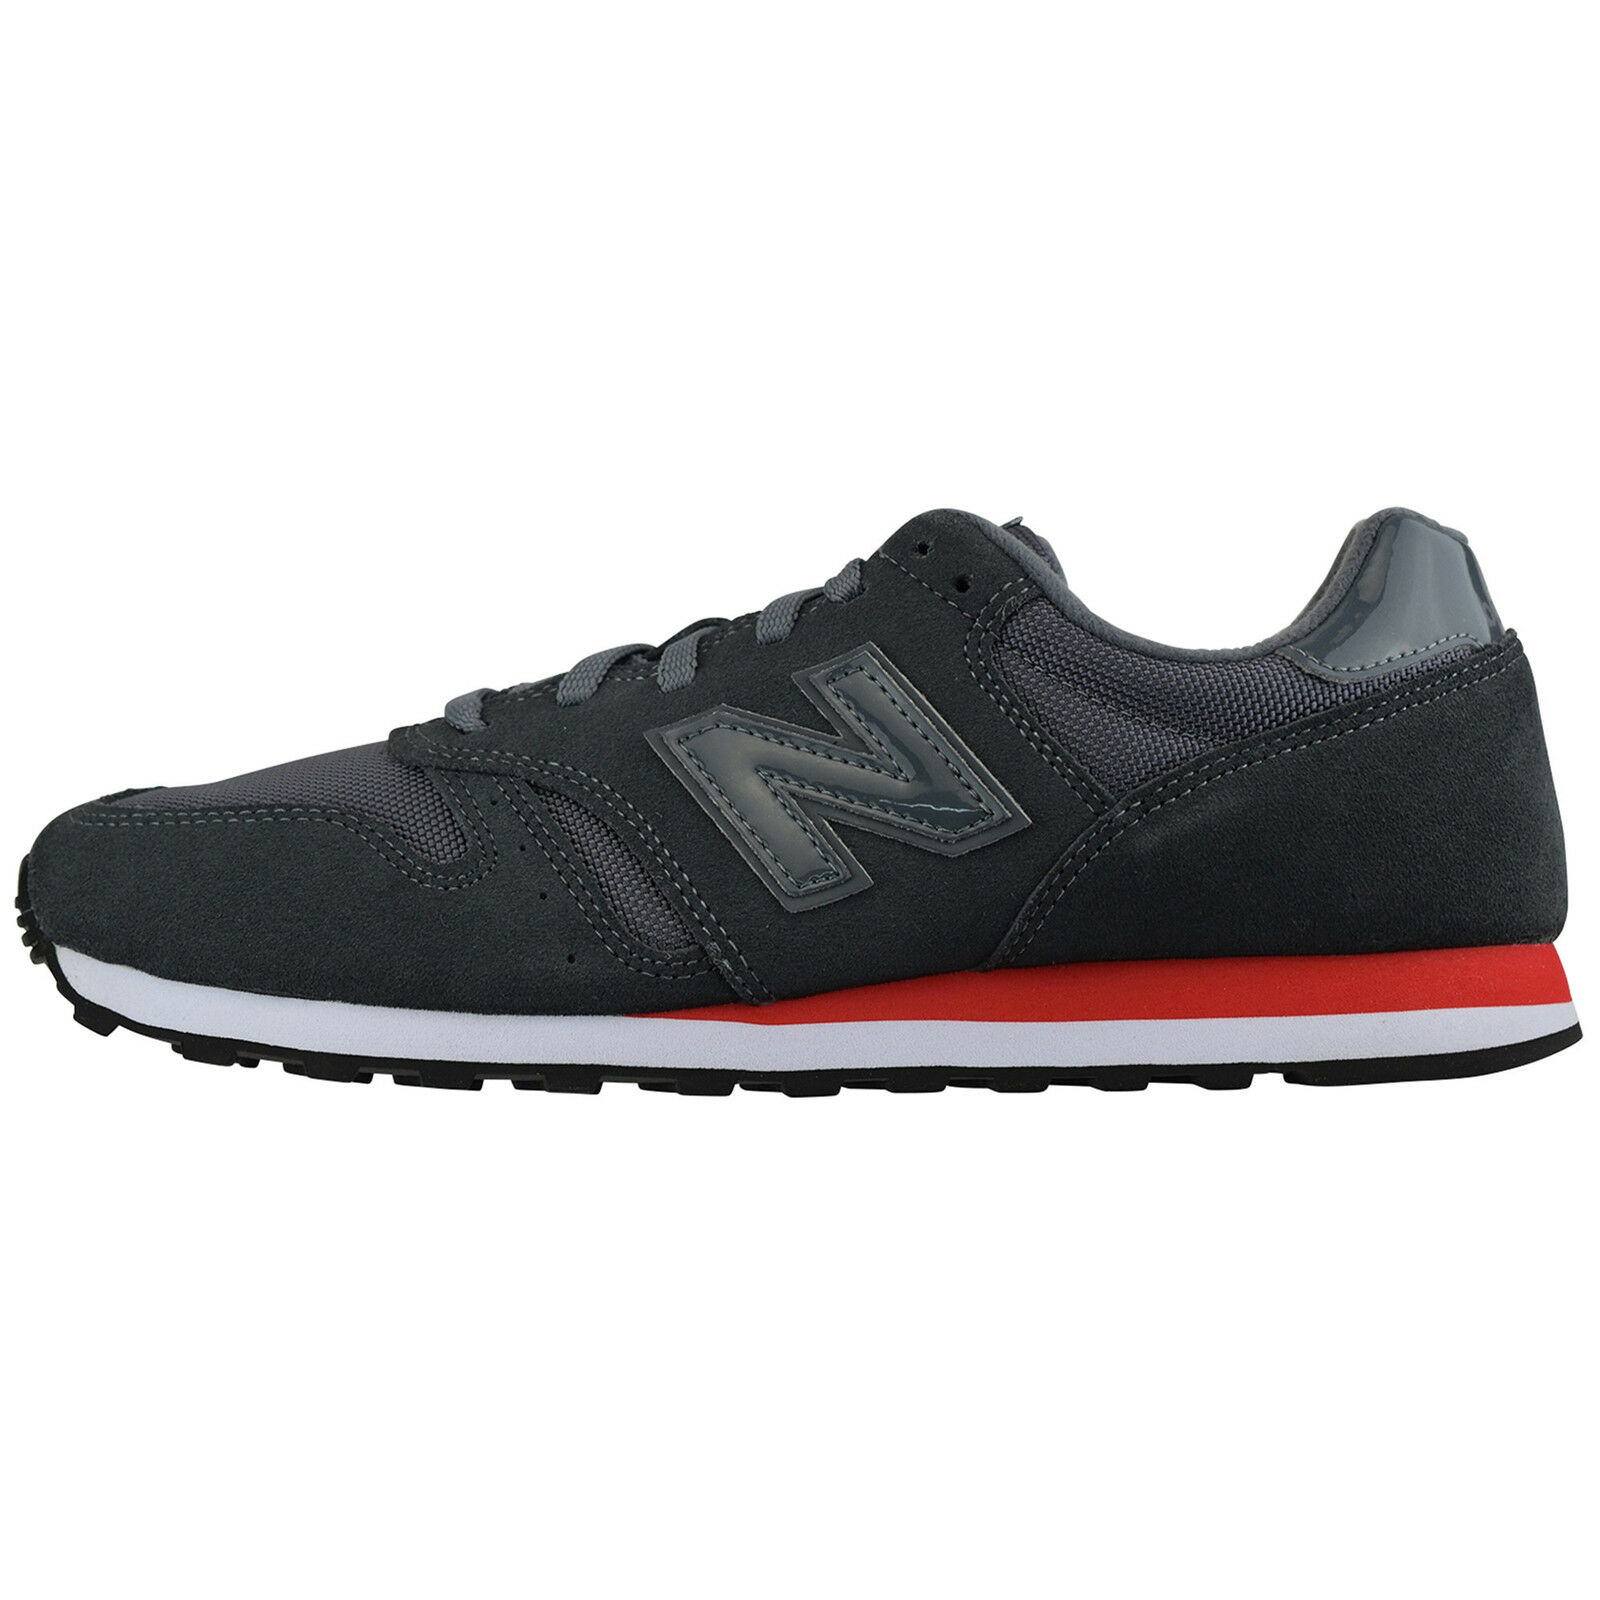 New Balance ml373ms Lifestyle Sneaker Leisure Running shoes